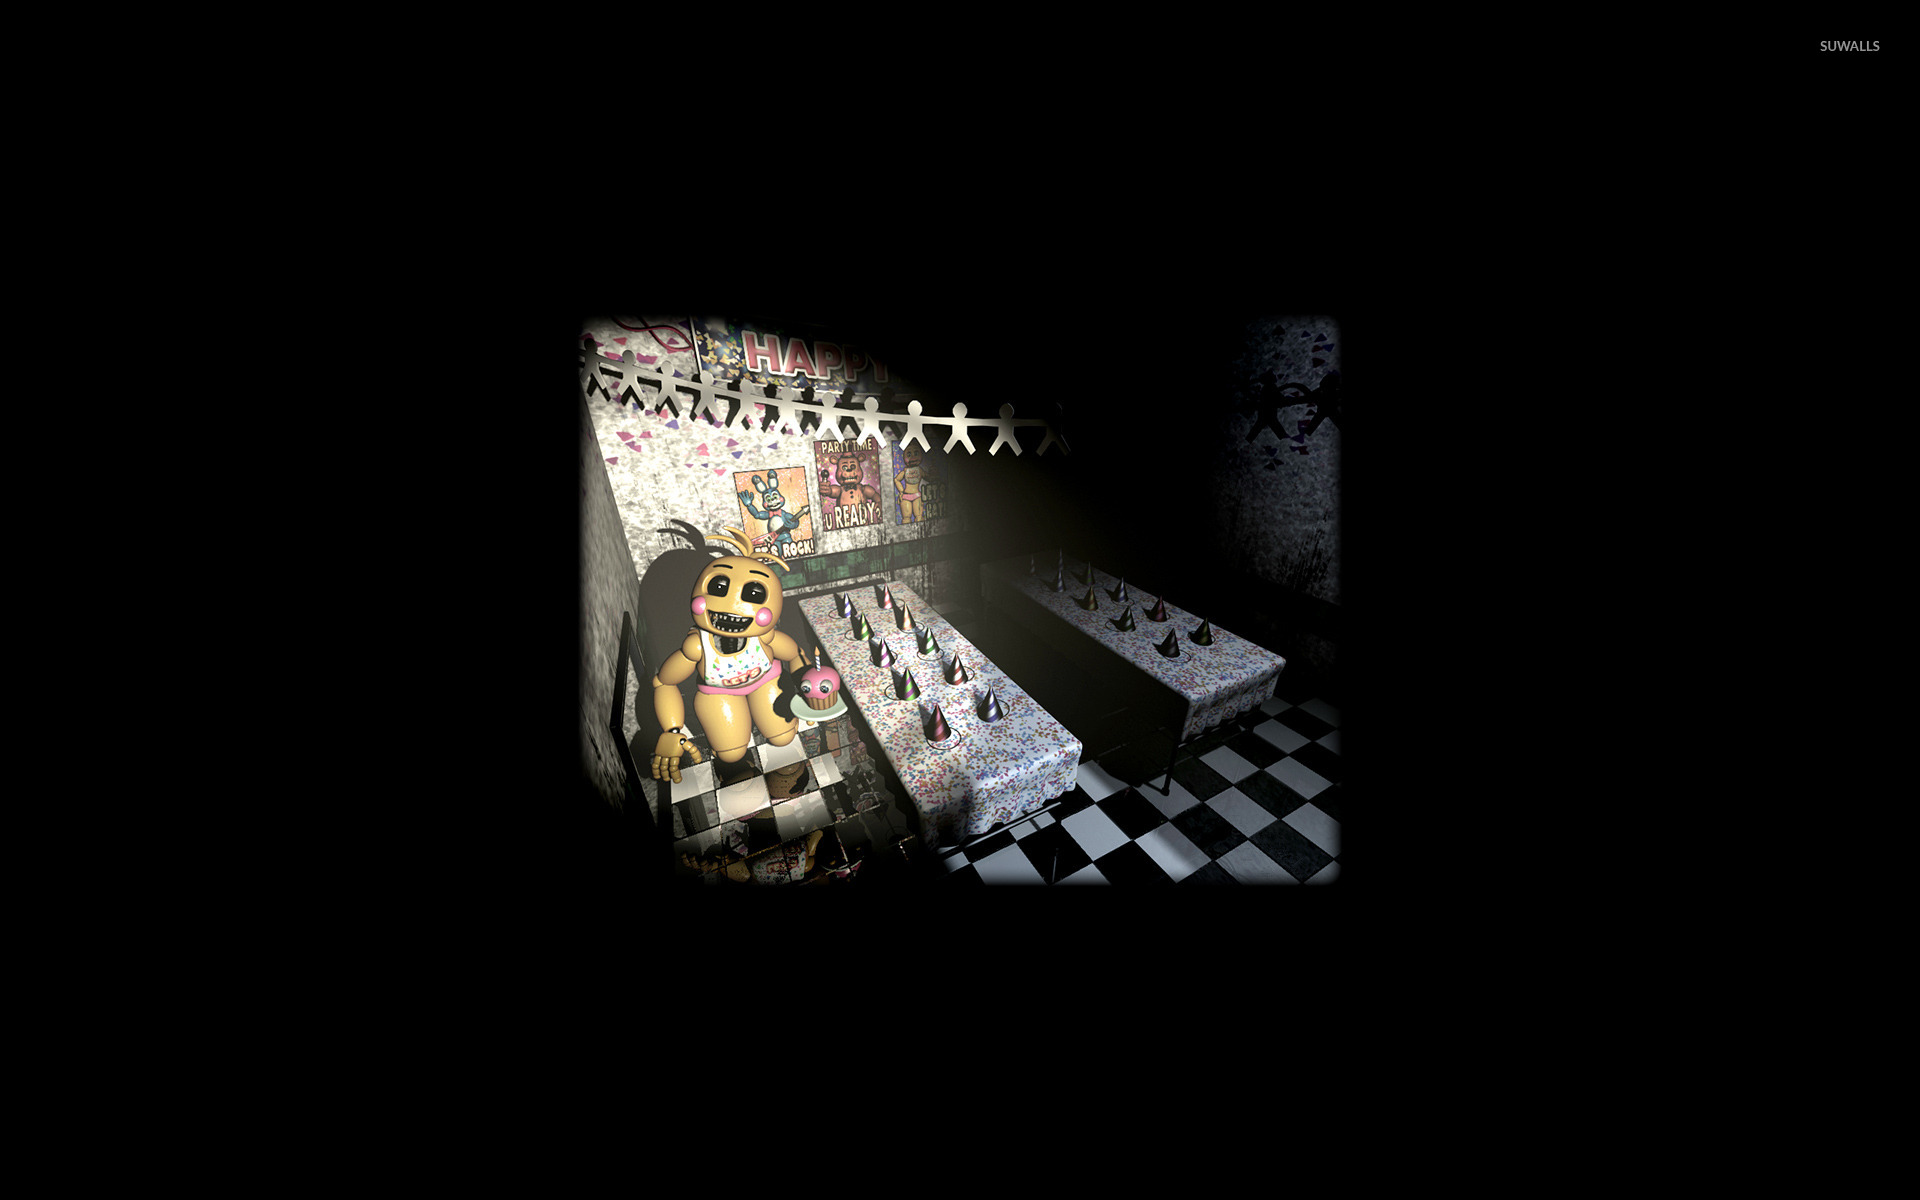 Free Download Five Nights At Freddys 5 Wallpaper Game Wallpapers